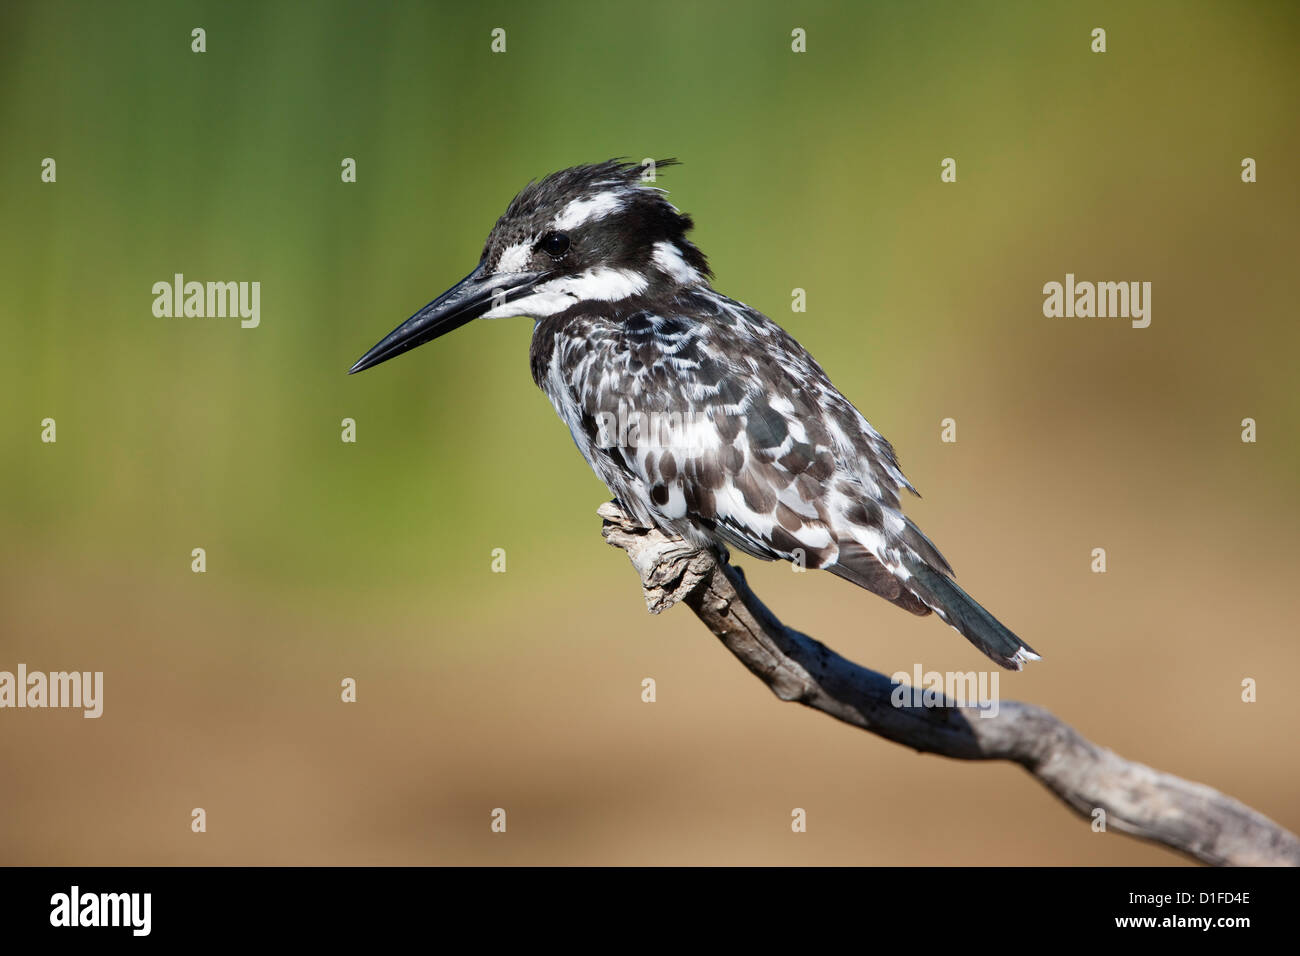 Pied kingfisher (Ceryle rudis), Intaka Island, Cape Town, South Africa, Africa - Stock Image